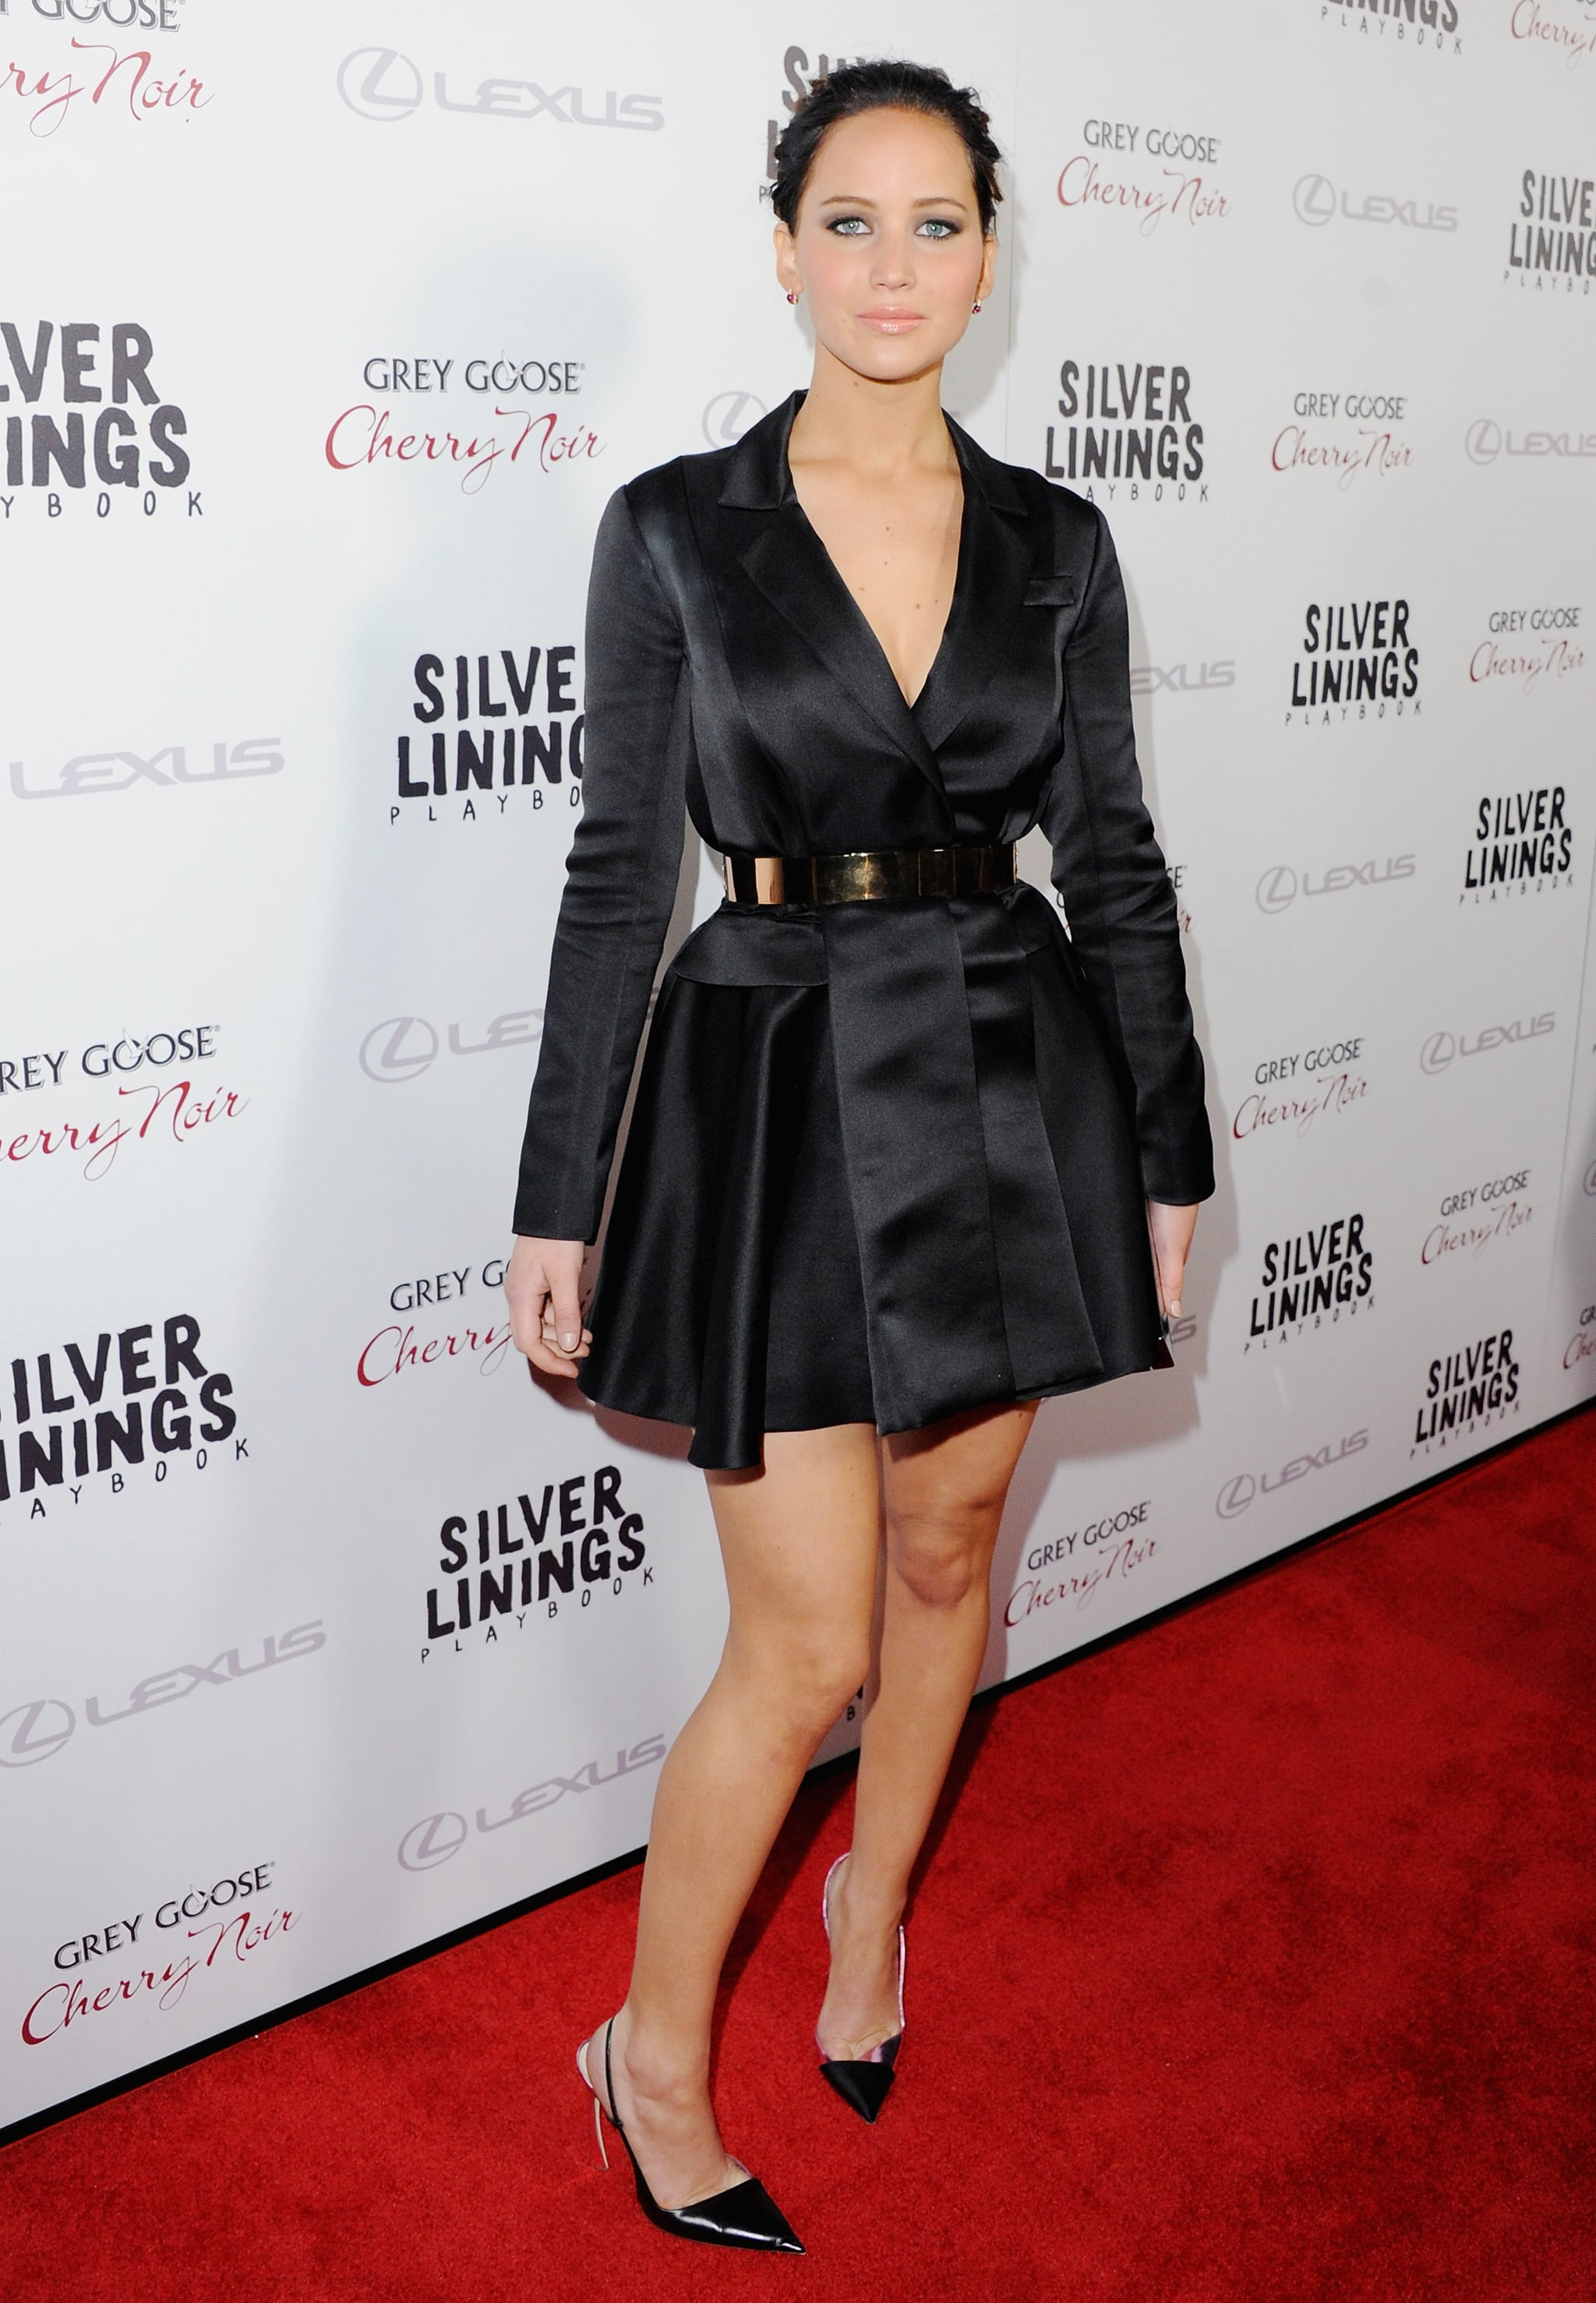 At the LA premiere of Silver Linings Playbook, Jennifer Lawrence showed us that yes, she can pull off a dress that looks like a coat — especially if it's accessorized with a metallic belt.